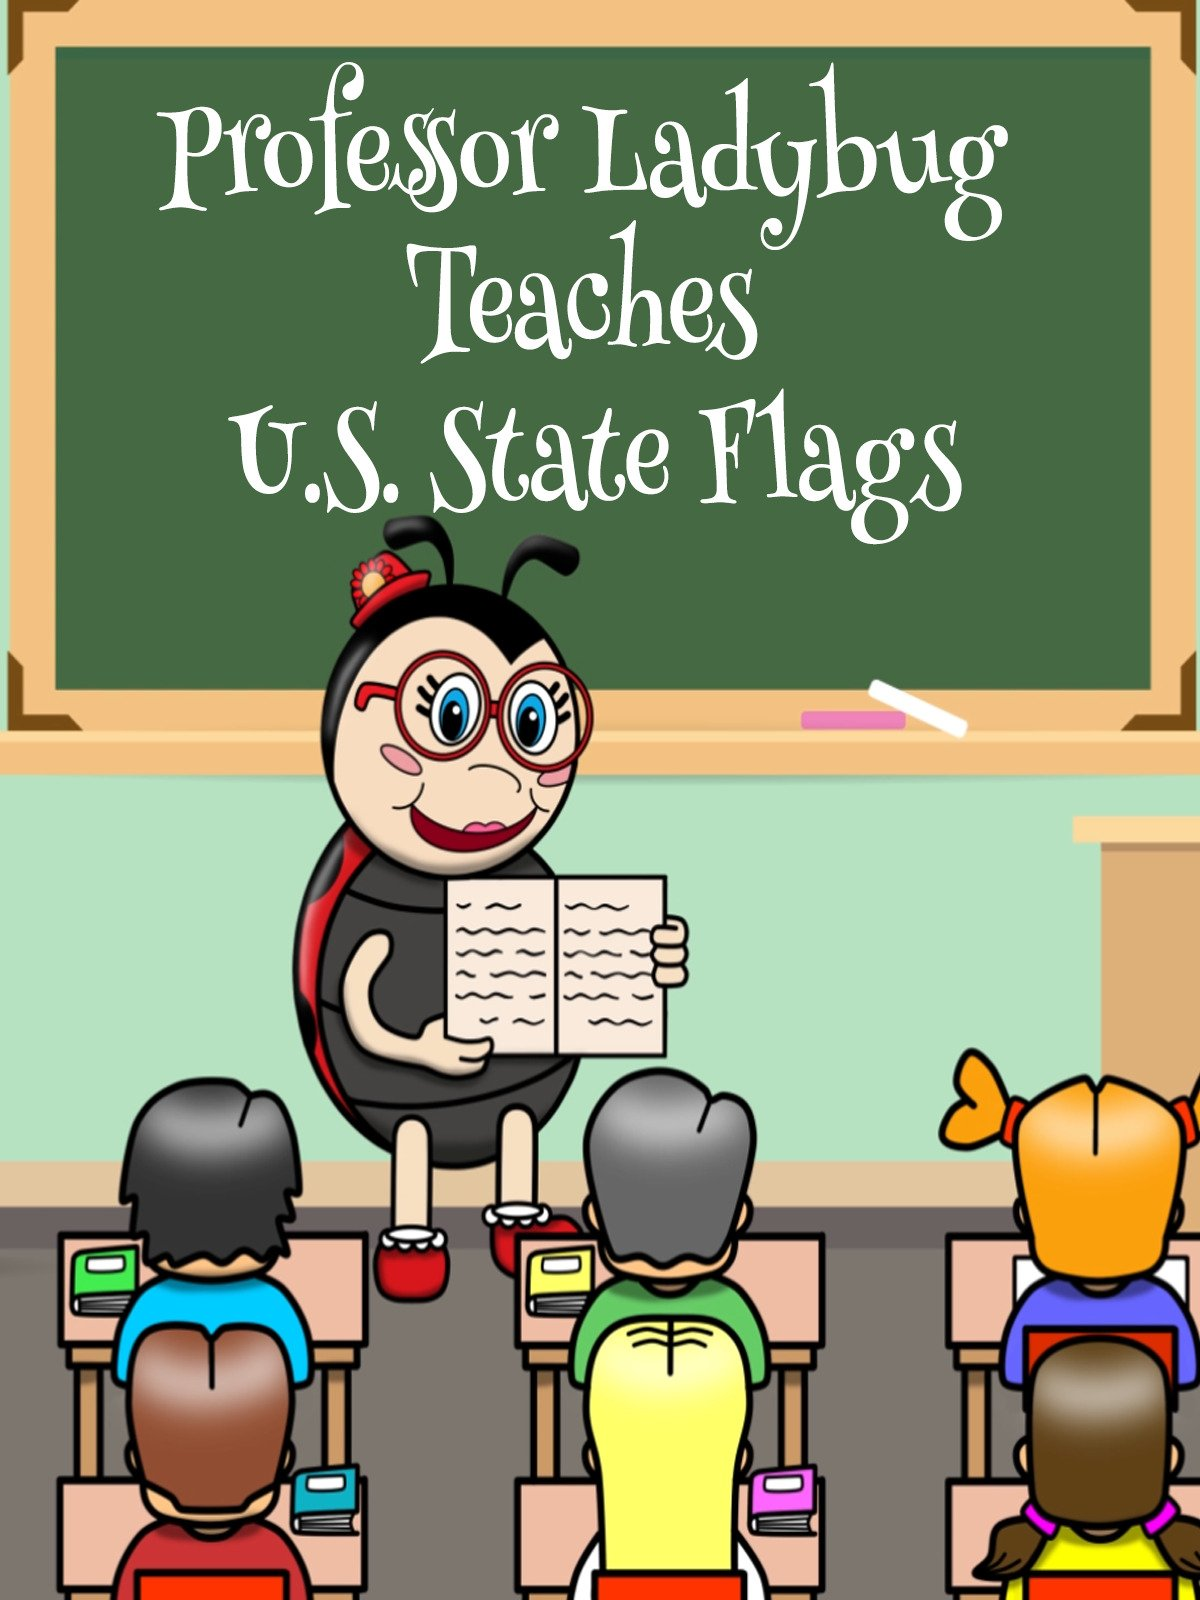 Professor Ladybug Teaches: U.S. State Flags on Amazon Prime Instant Video UK